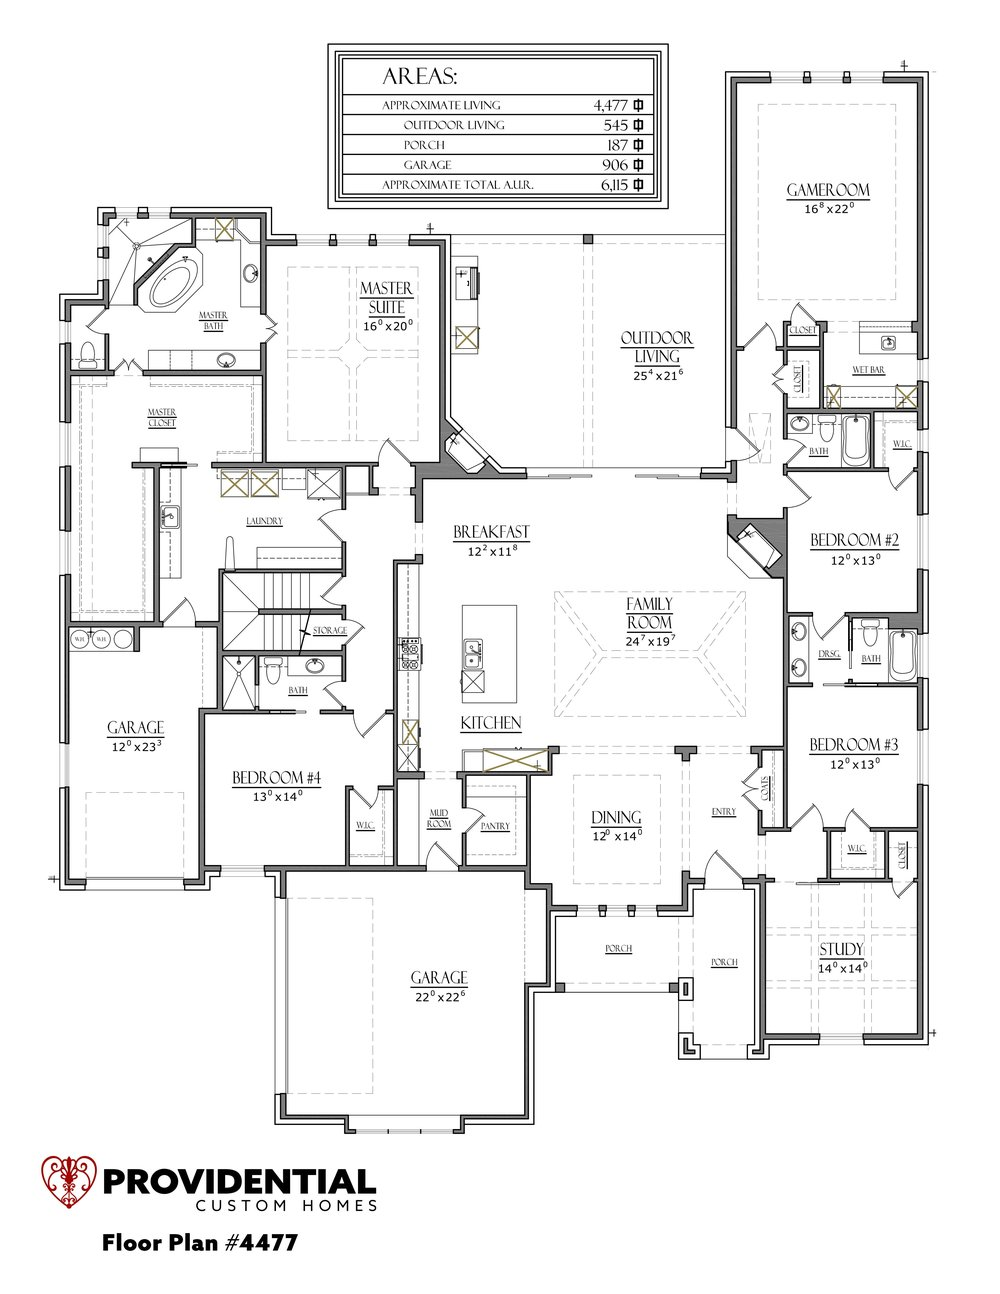 The FLOOR PLAN #4477.jpg